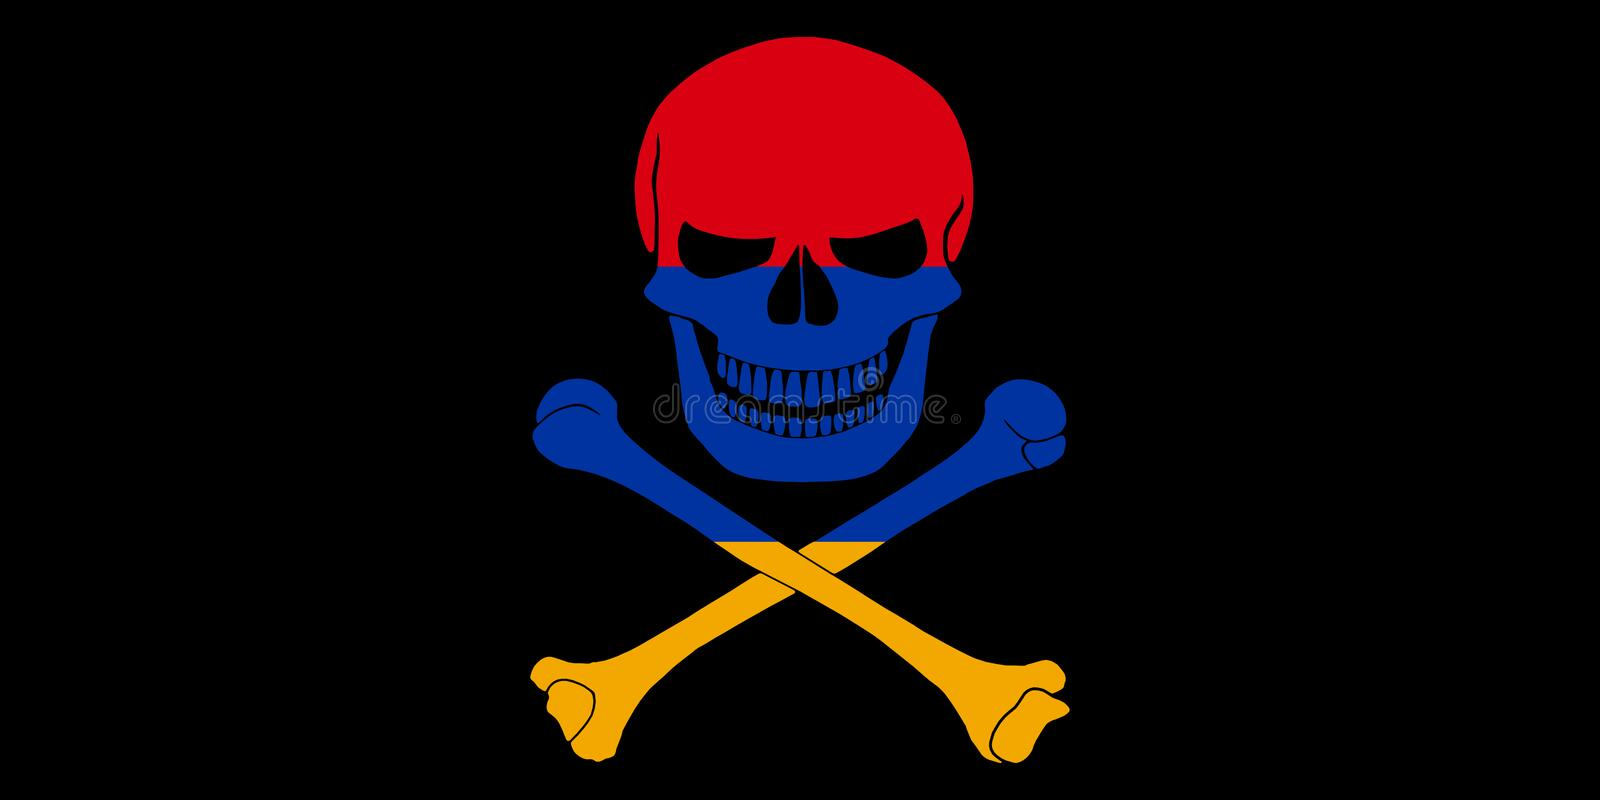 Pirate flag combined with Armenian flag. Black pirate flag with the image of Jolly Roger with crossbones combined with colors of the Armenian flag royalty free illustration